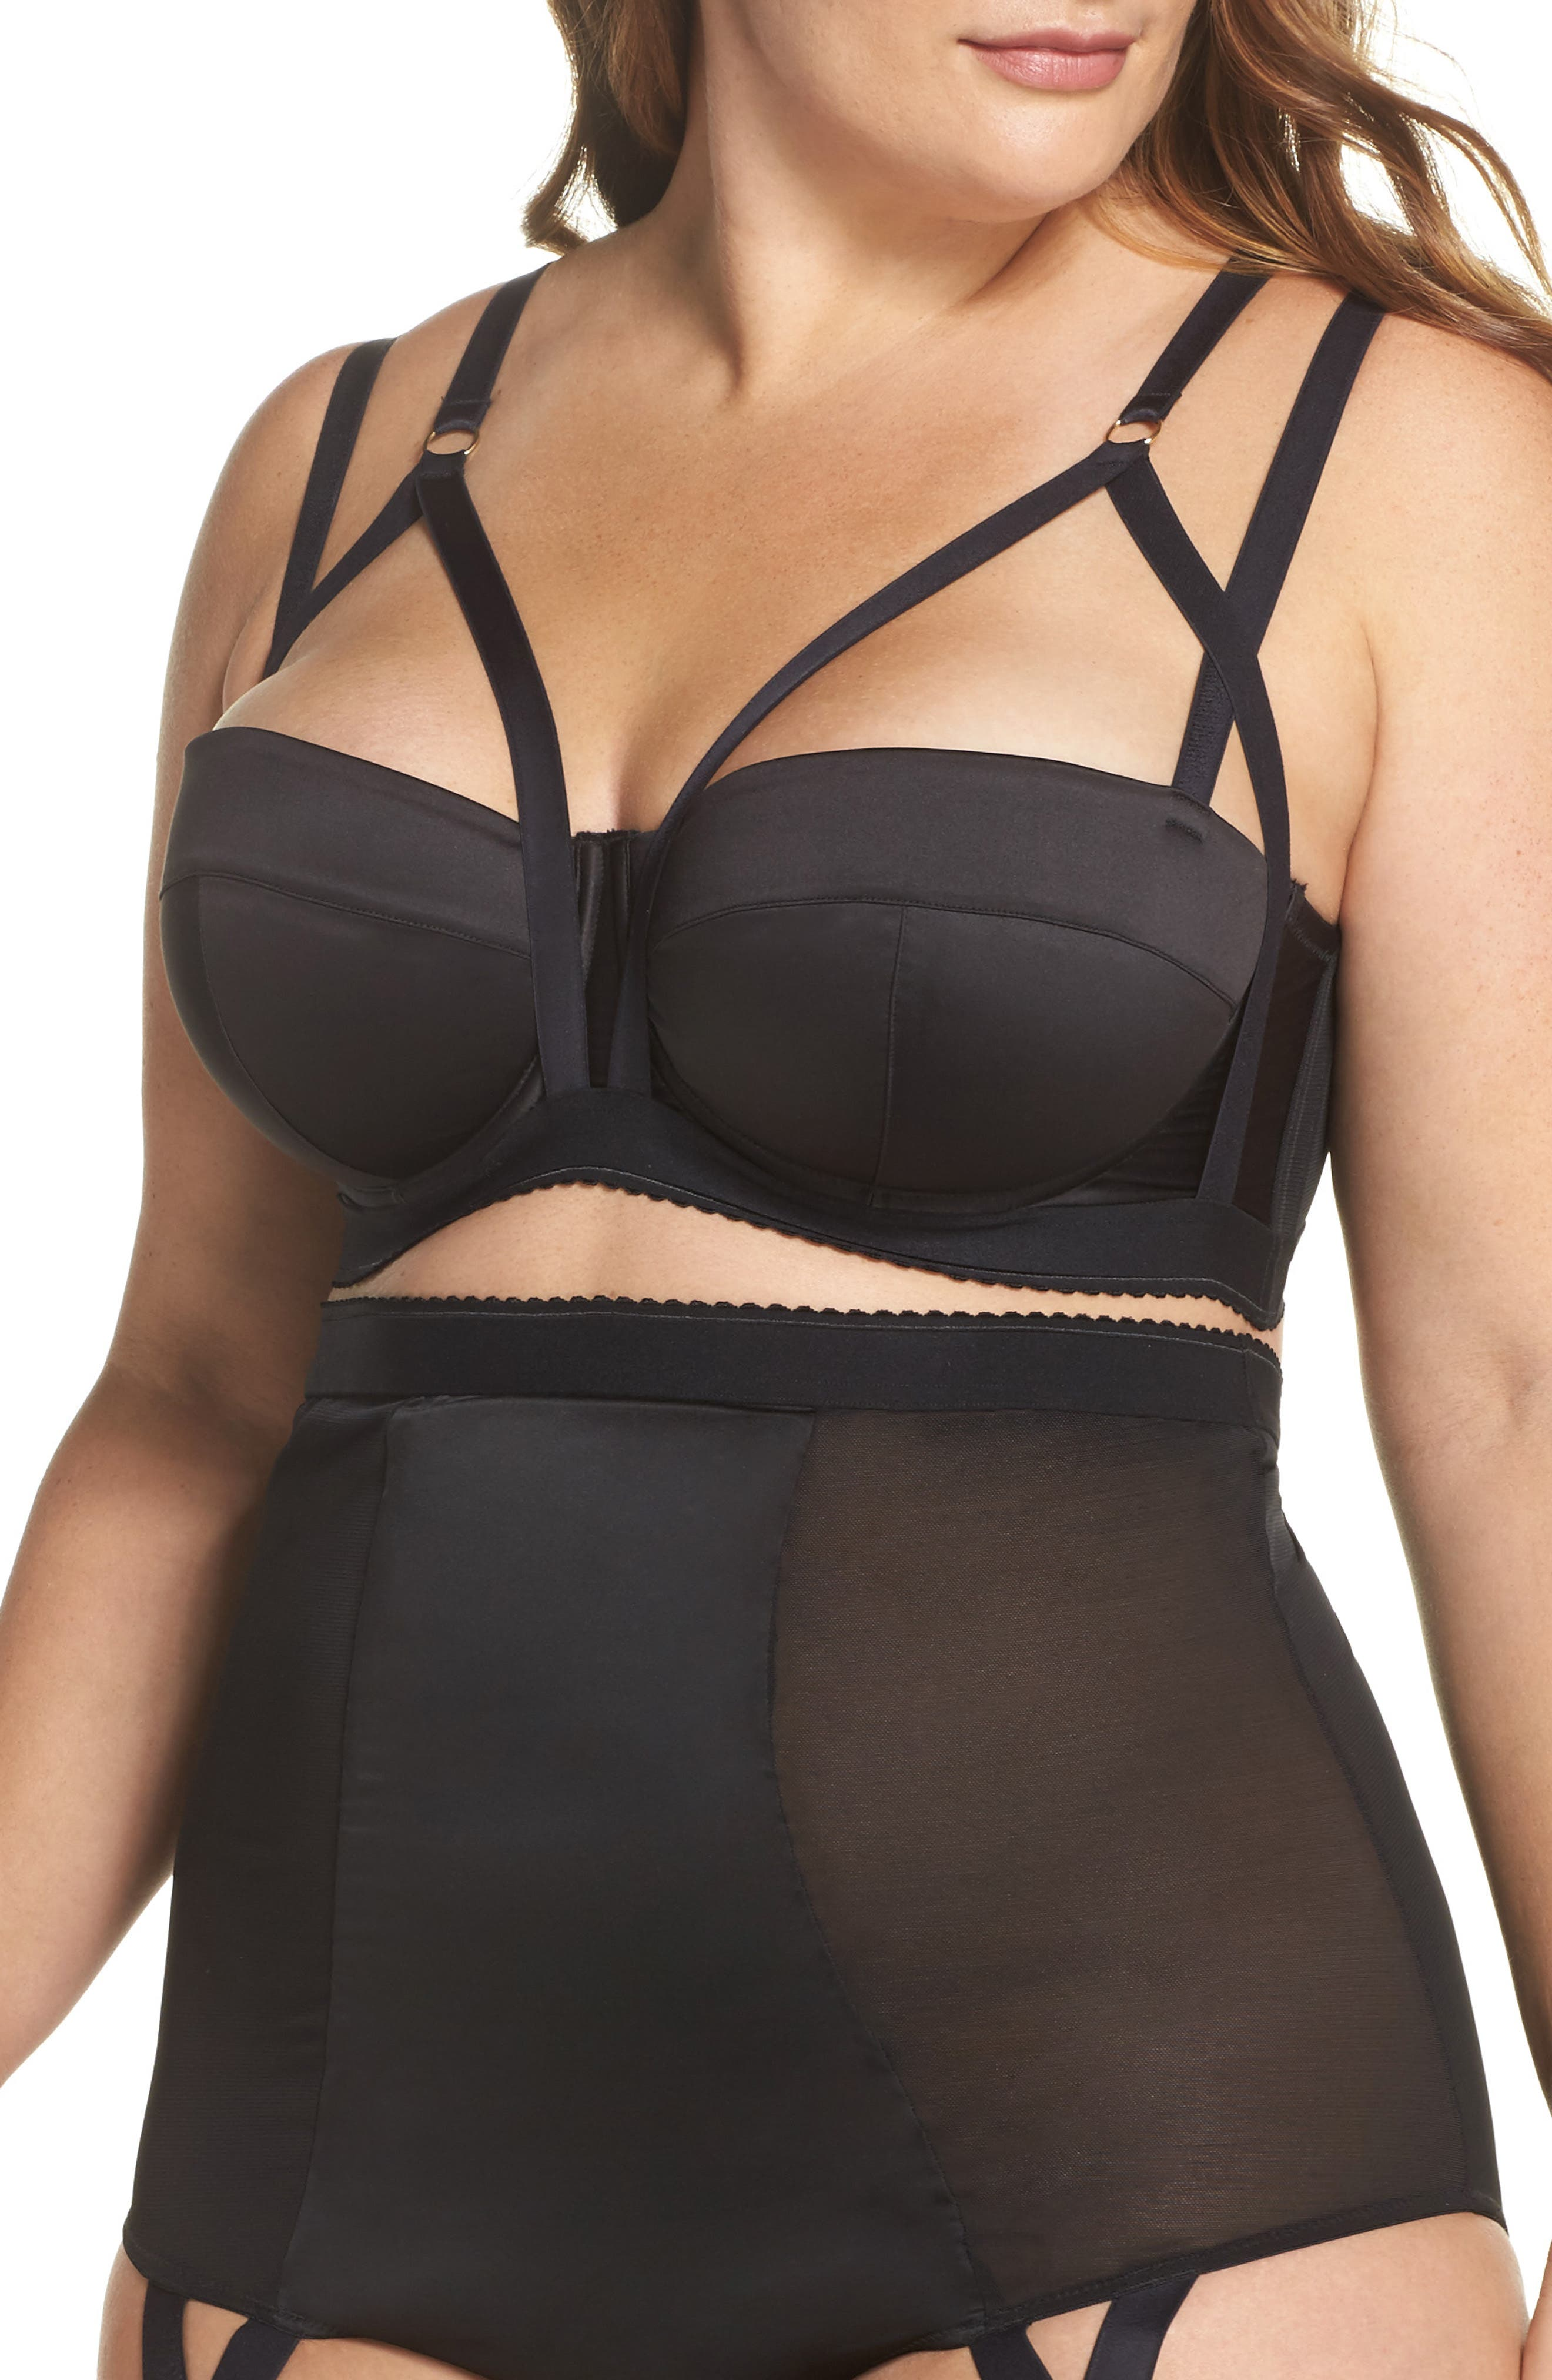 Playful Promies Candace Noir Strappy Underwire Bra,                             Main thumbnail 1, color,